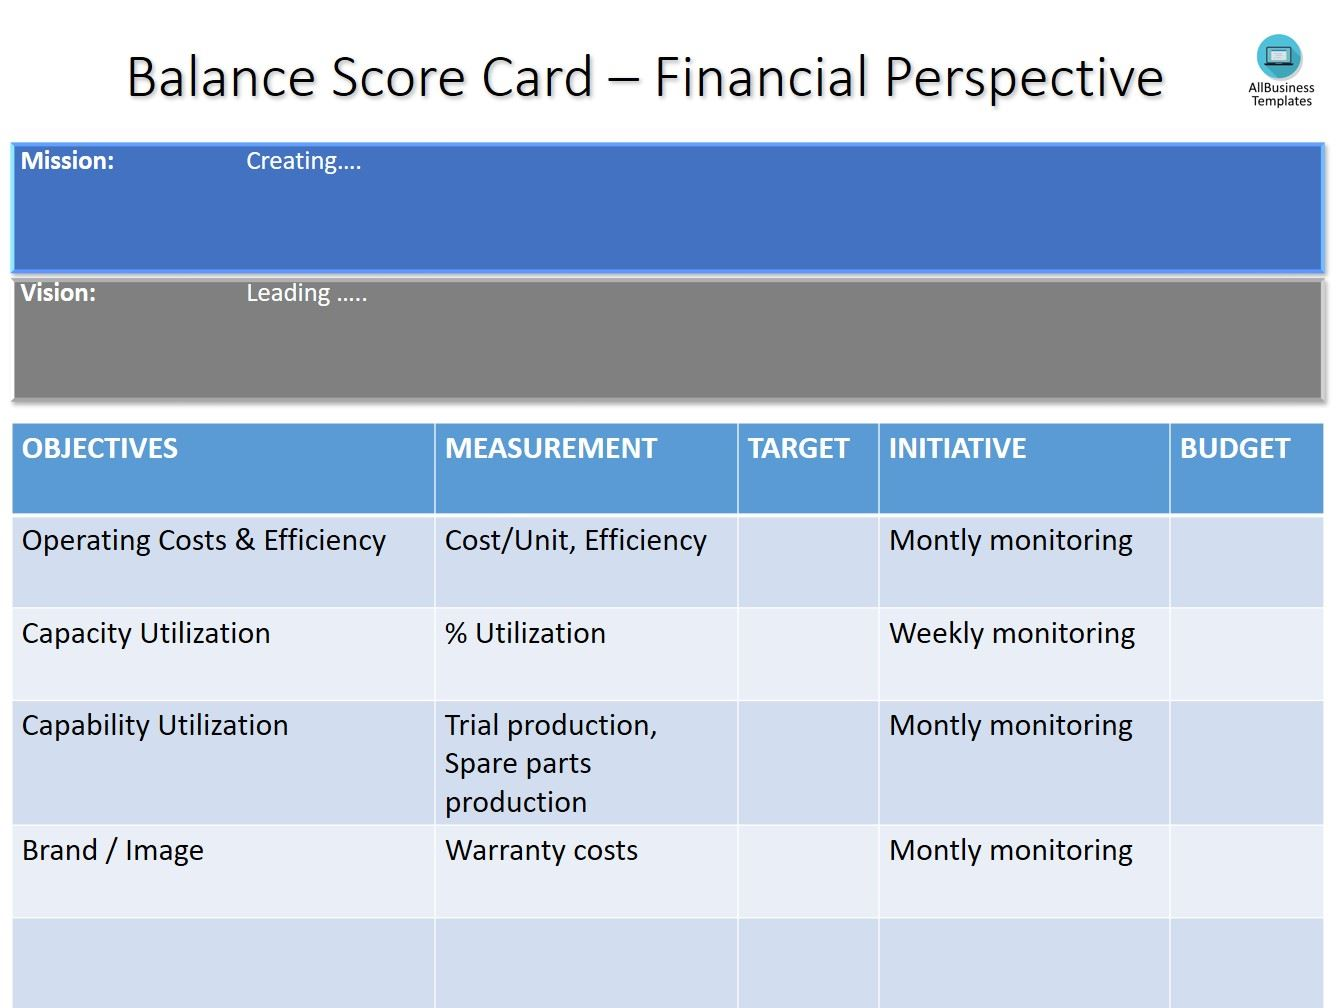 Balanced Scorecard Ppt Templates At Allbusinesstemplates